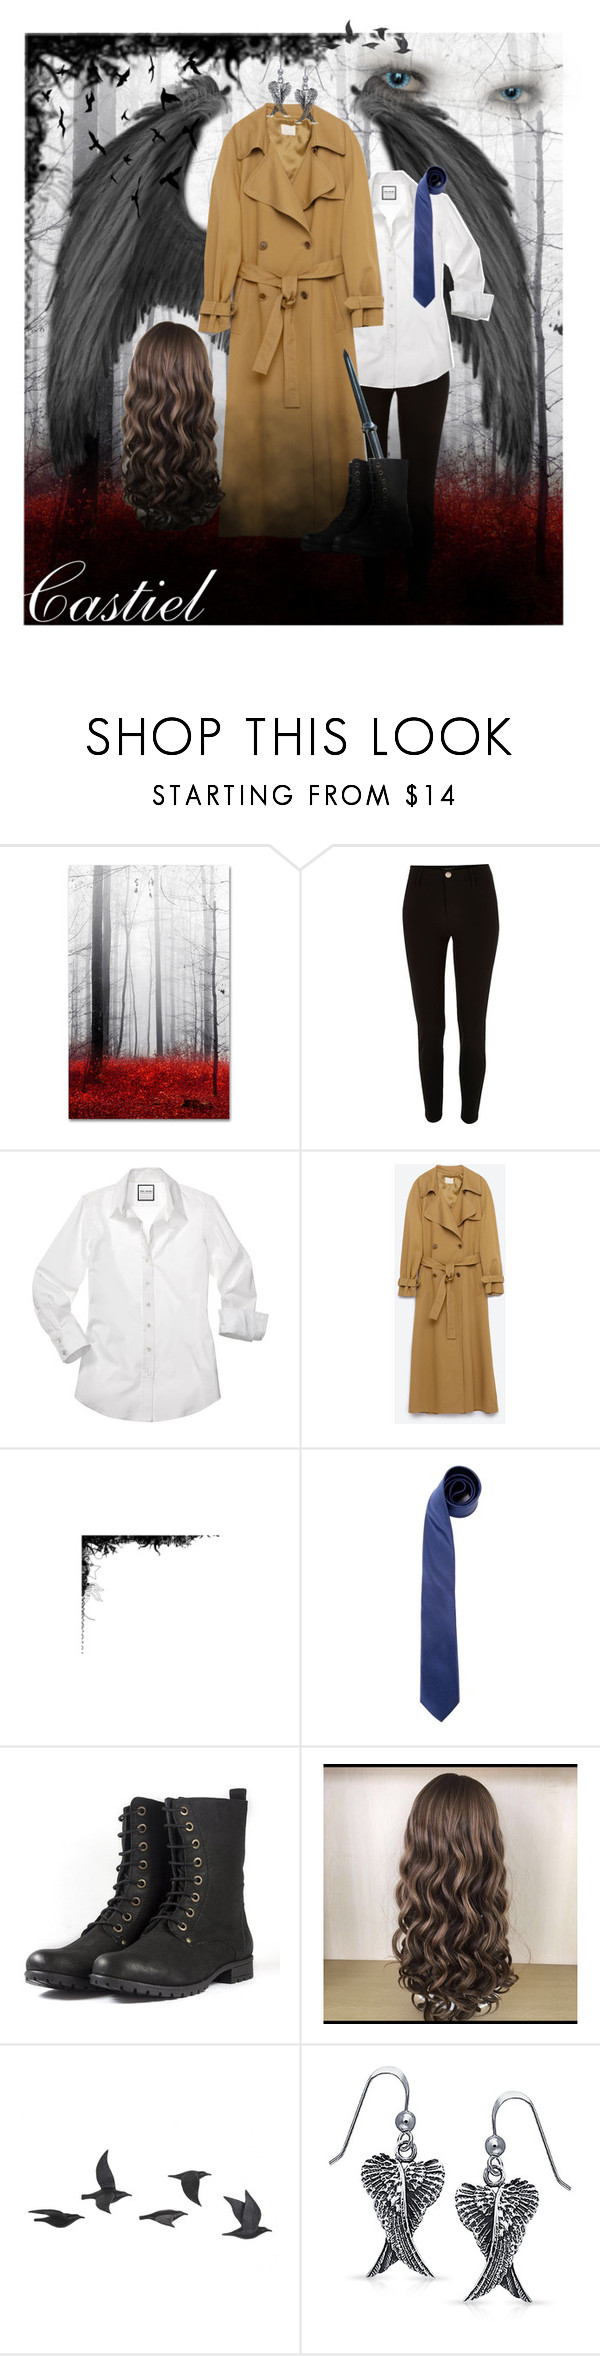 """""""Cass 💙"""" by my-chemical-fangirl ❤ liked on Polyvore featuring Trademark Fine Art, River Island, Dolce&Gabbana, Jayson Home, Bling Jewelry, WALL, supernatural and misha"""